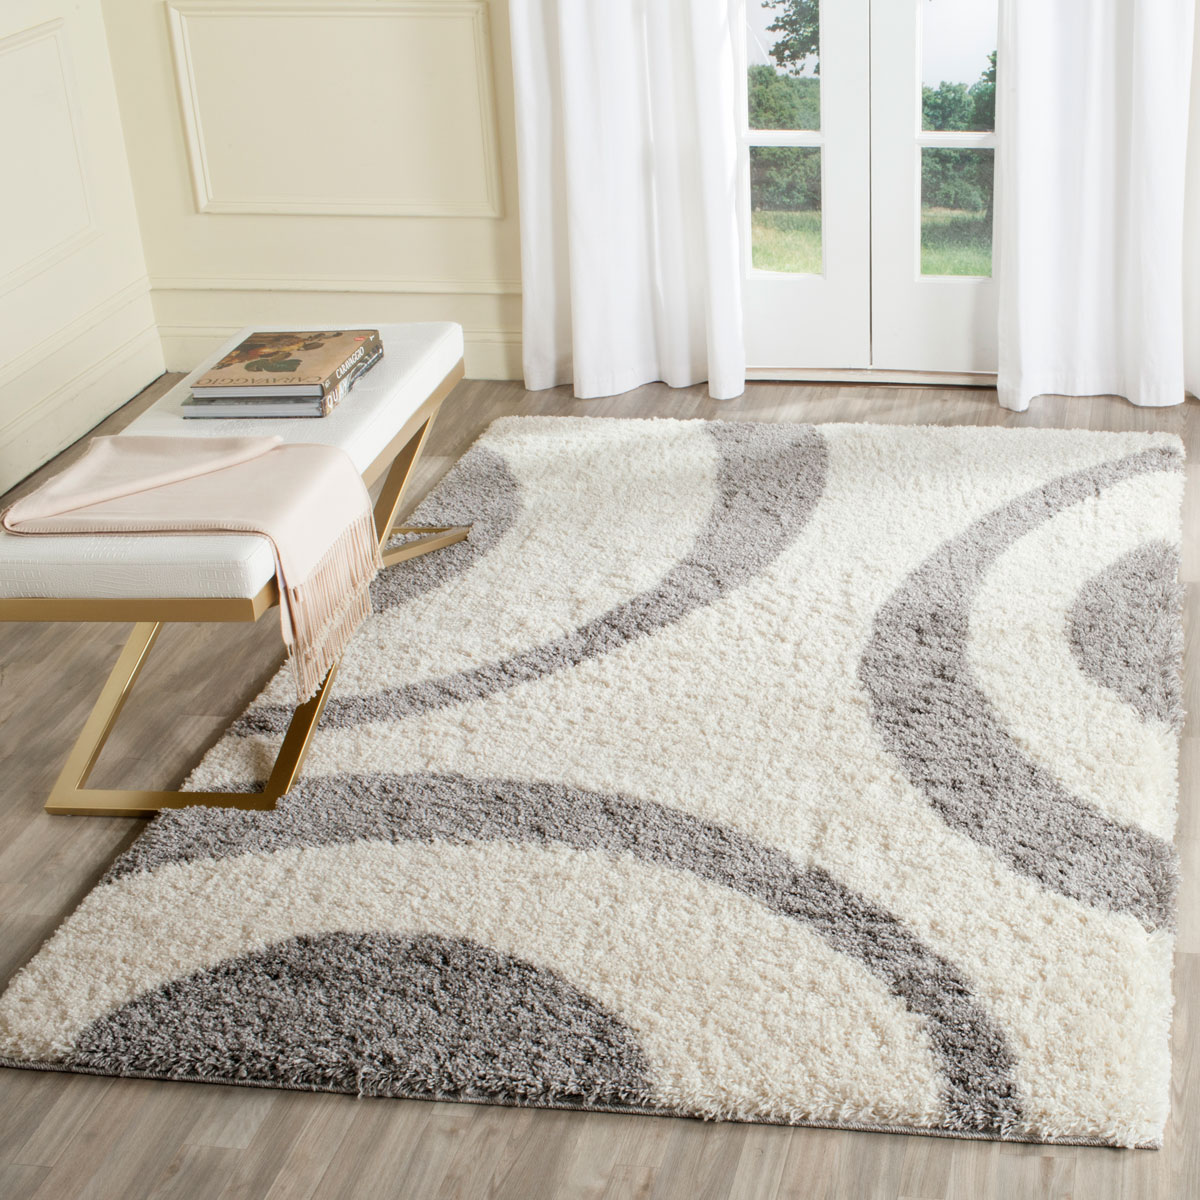 Rug Pts213a Portofino Shag Area Rugs By Safavieh